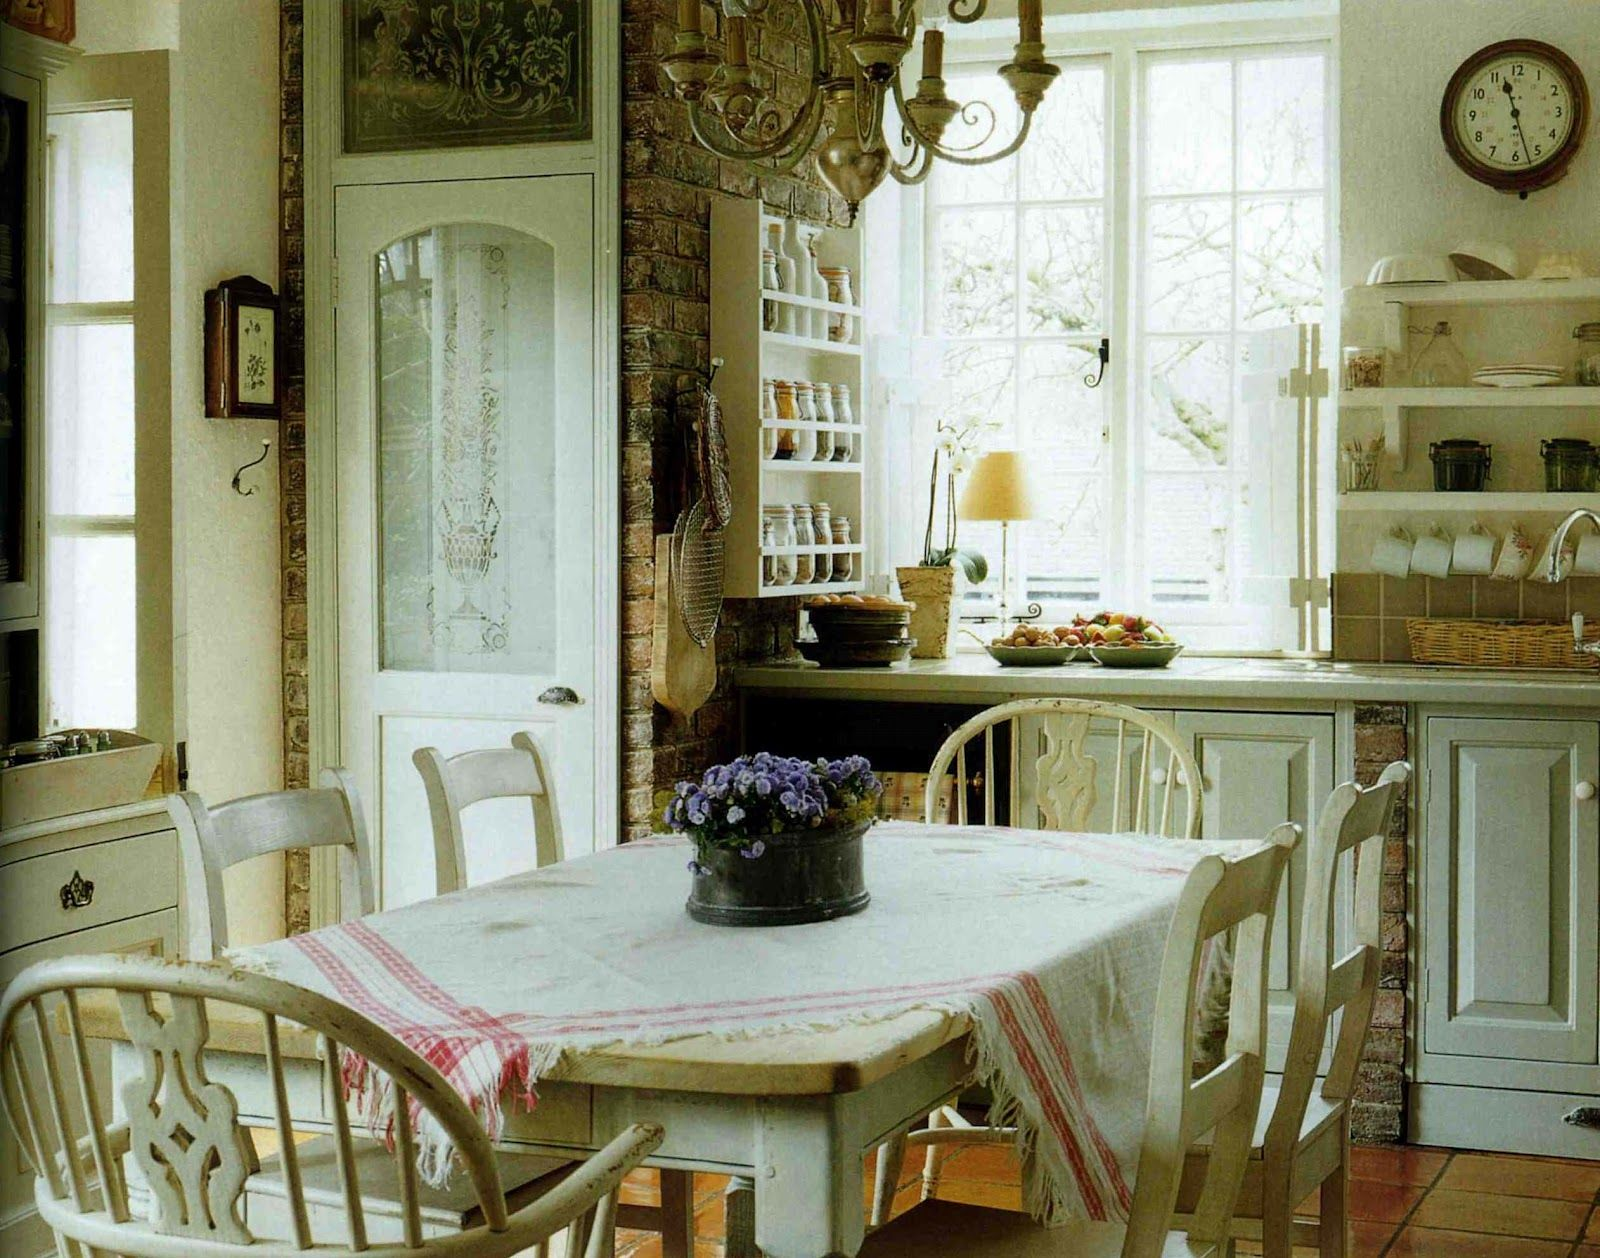 English Home Magazine Suspiciously Like The Kitchen In